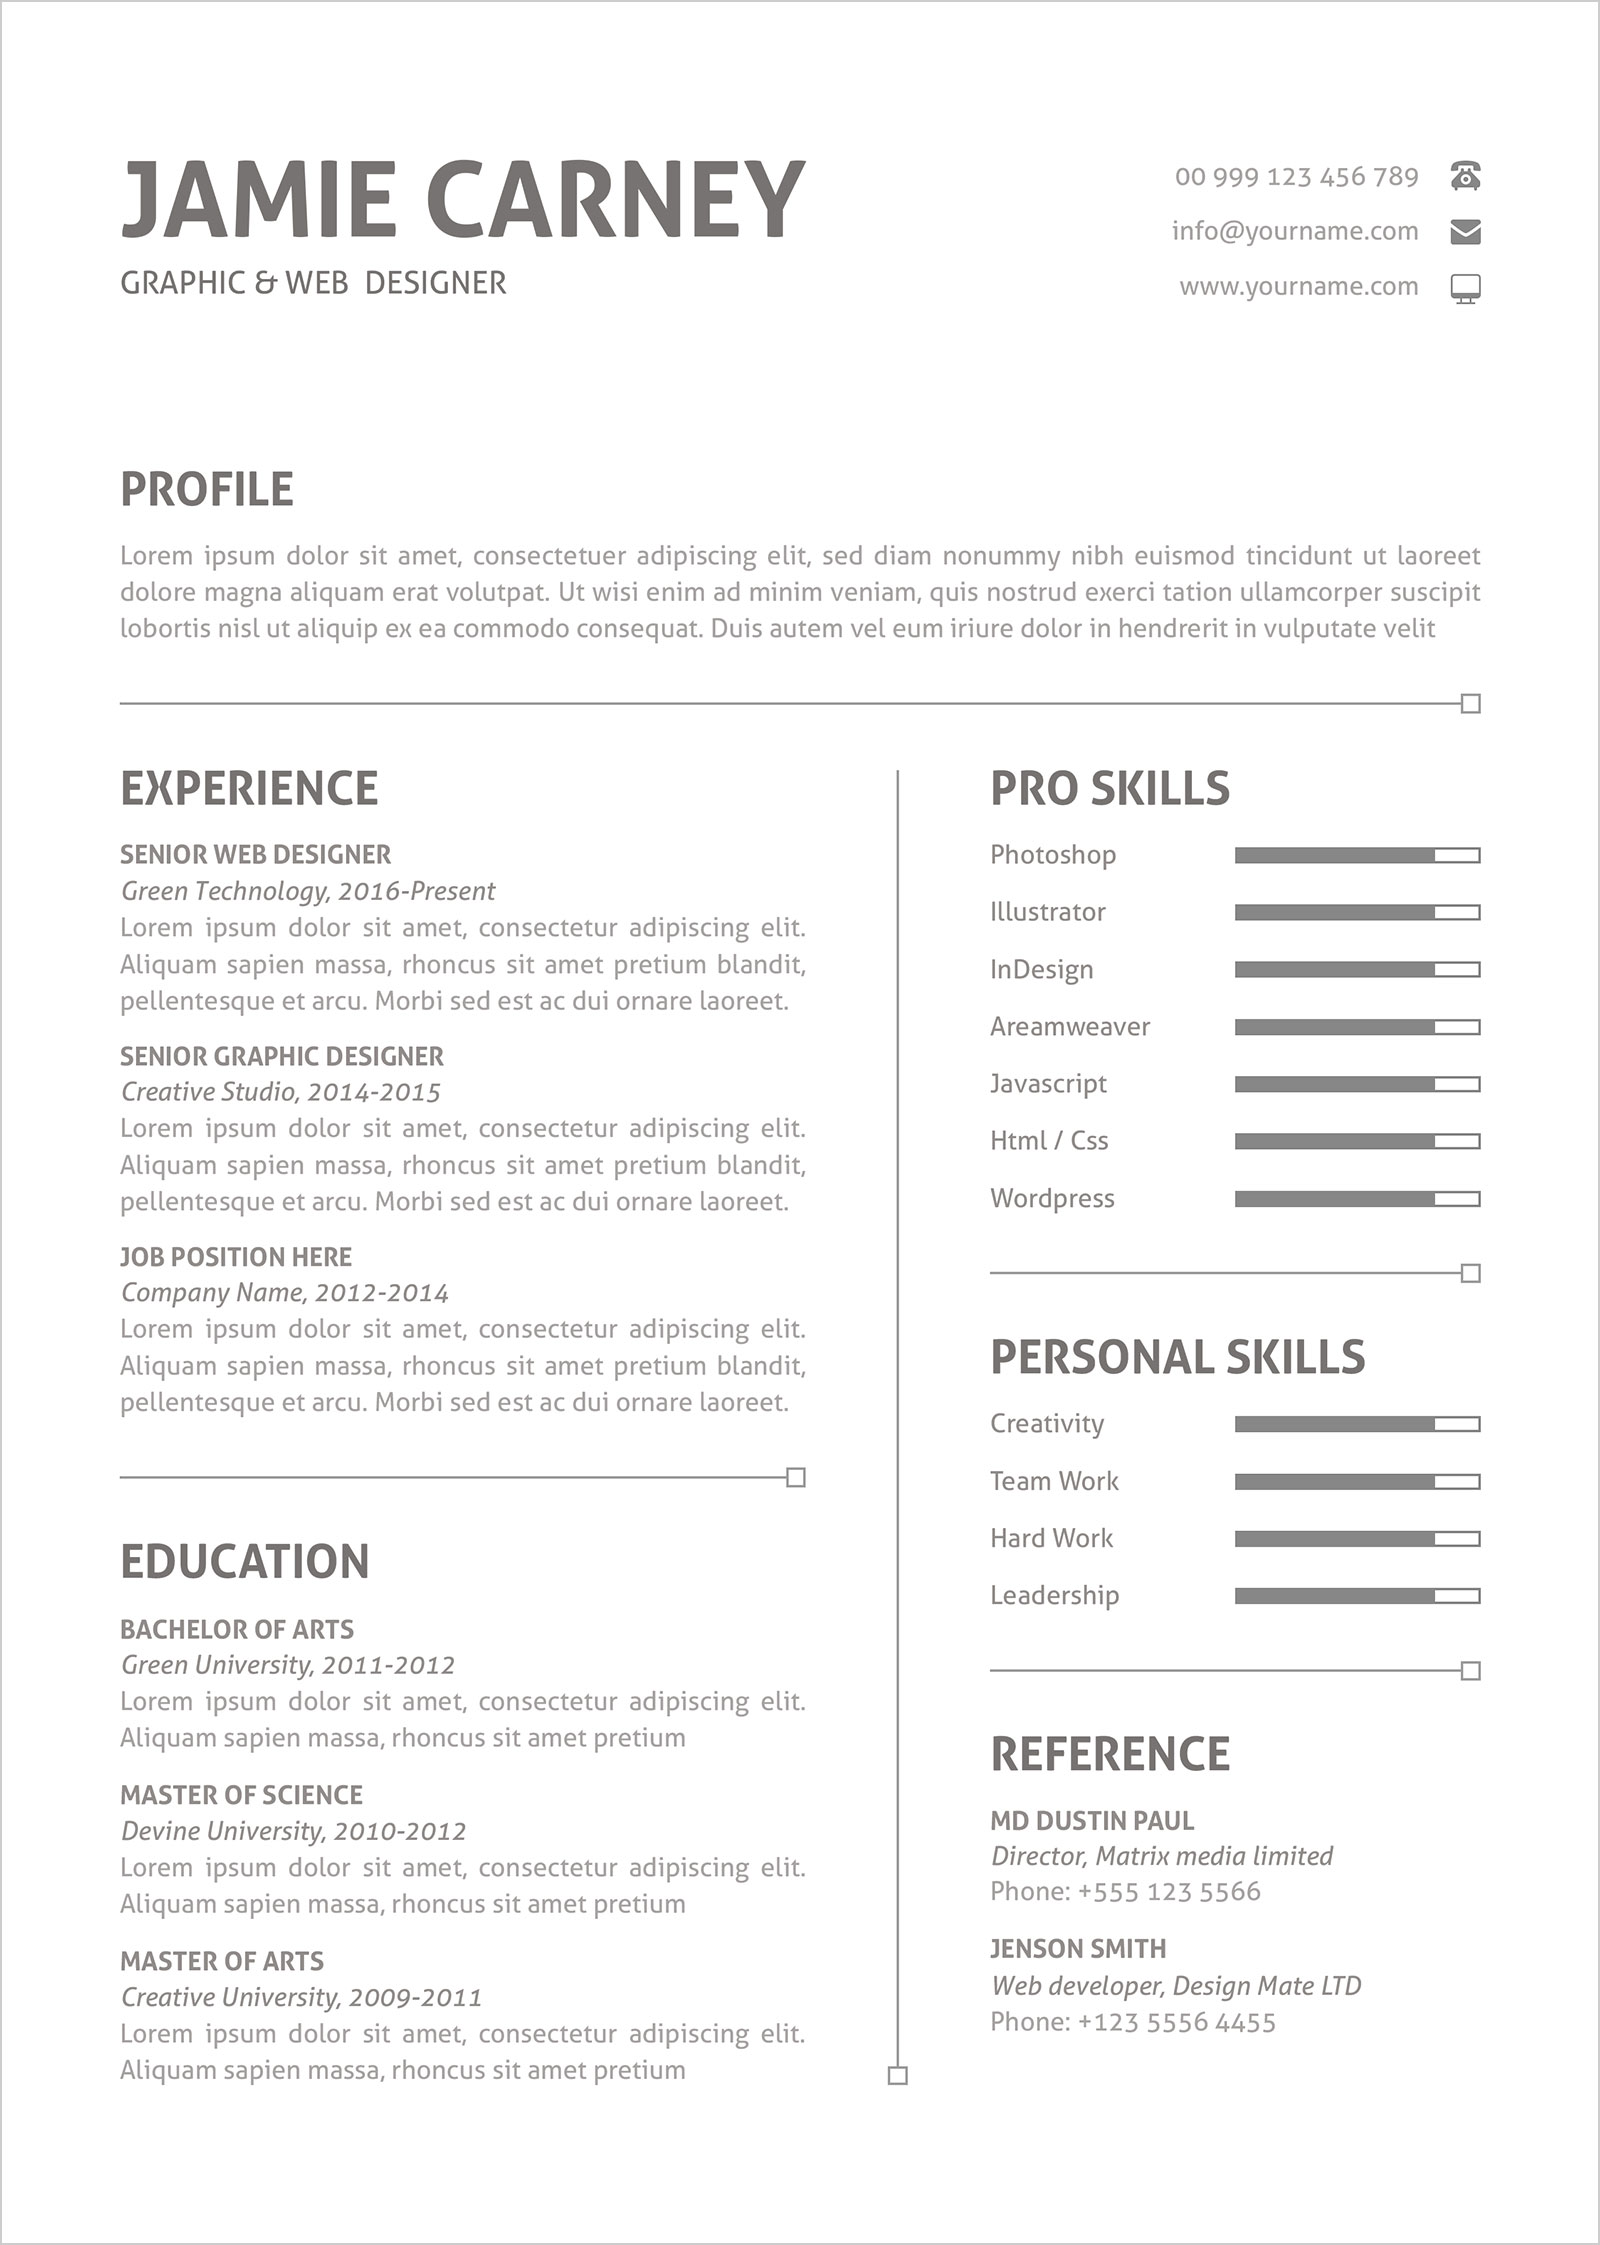 Free-Simple-Resume-Layout-Template-in-Ai,-PSD-and-Word-Format